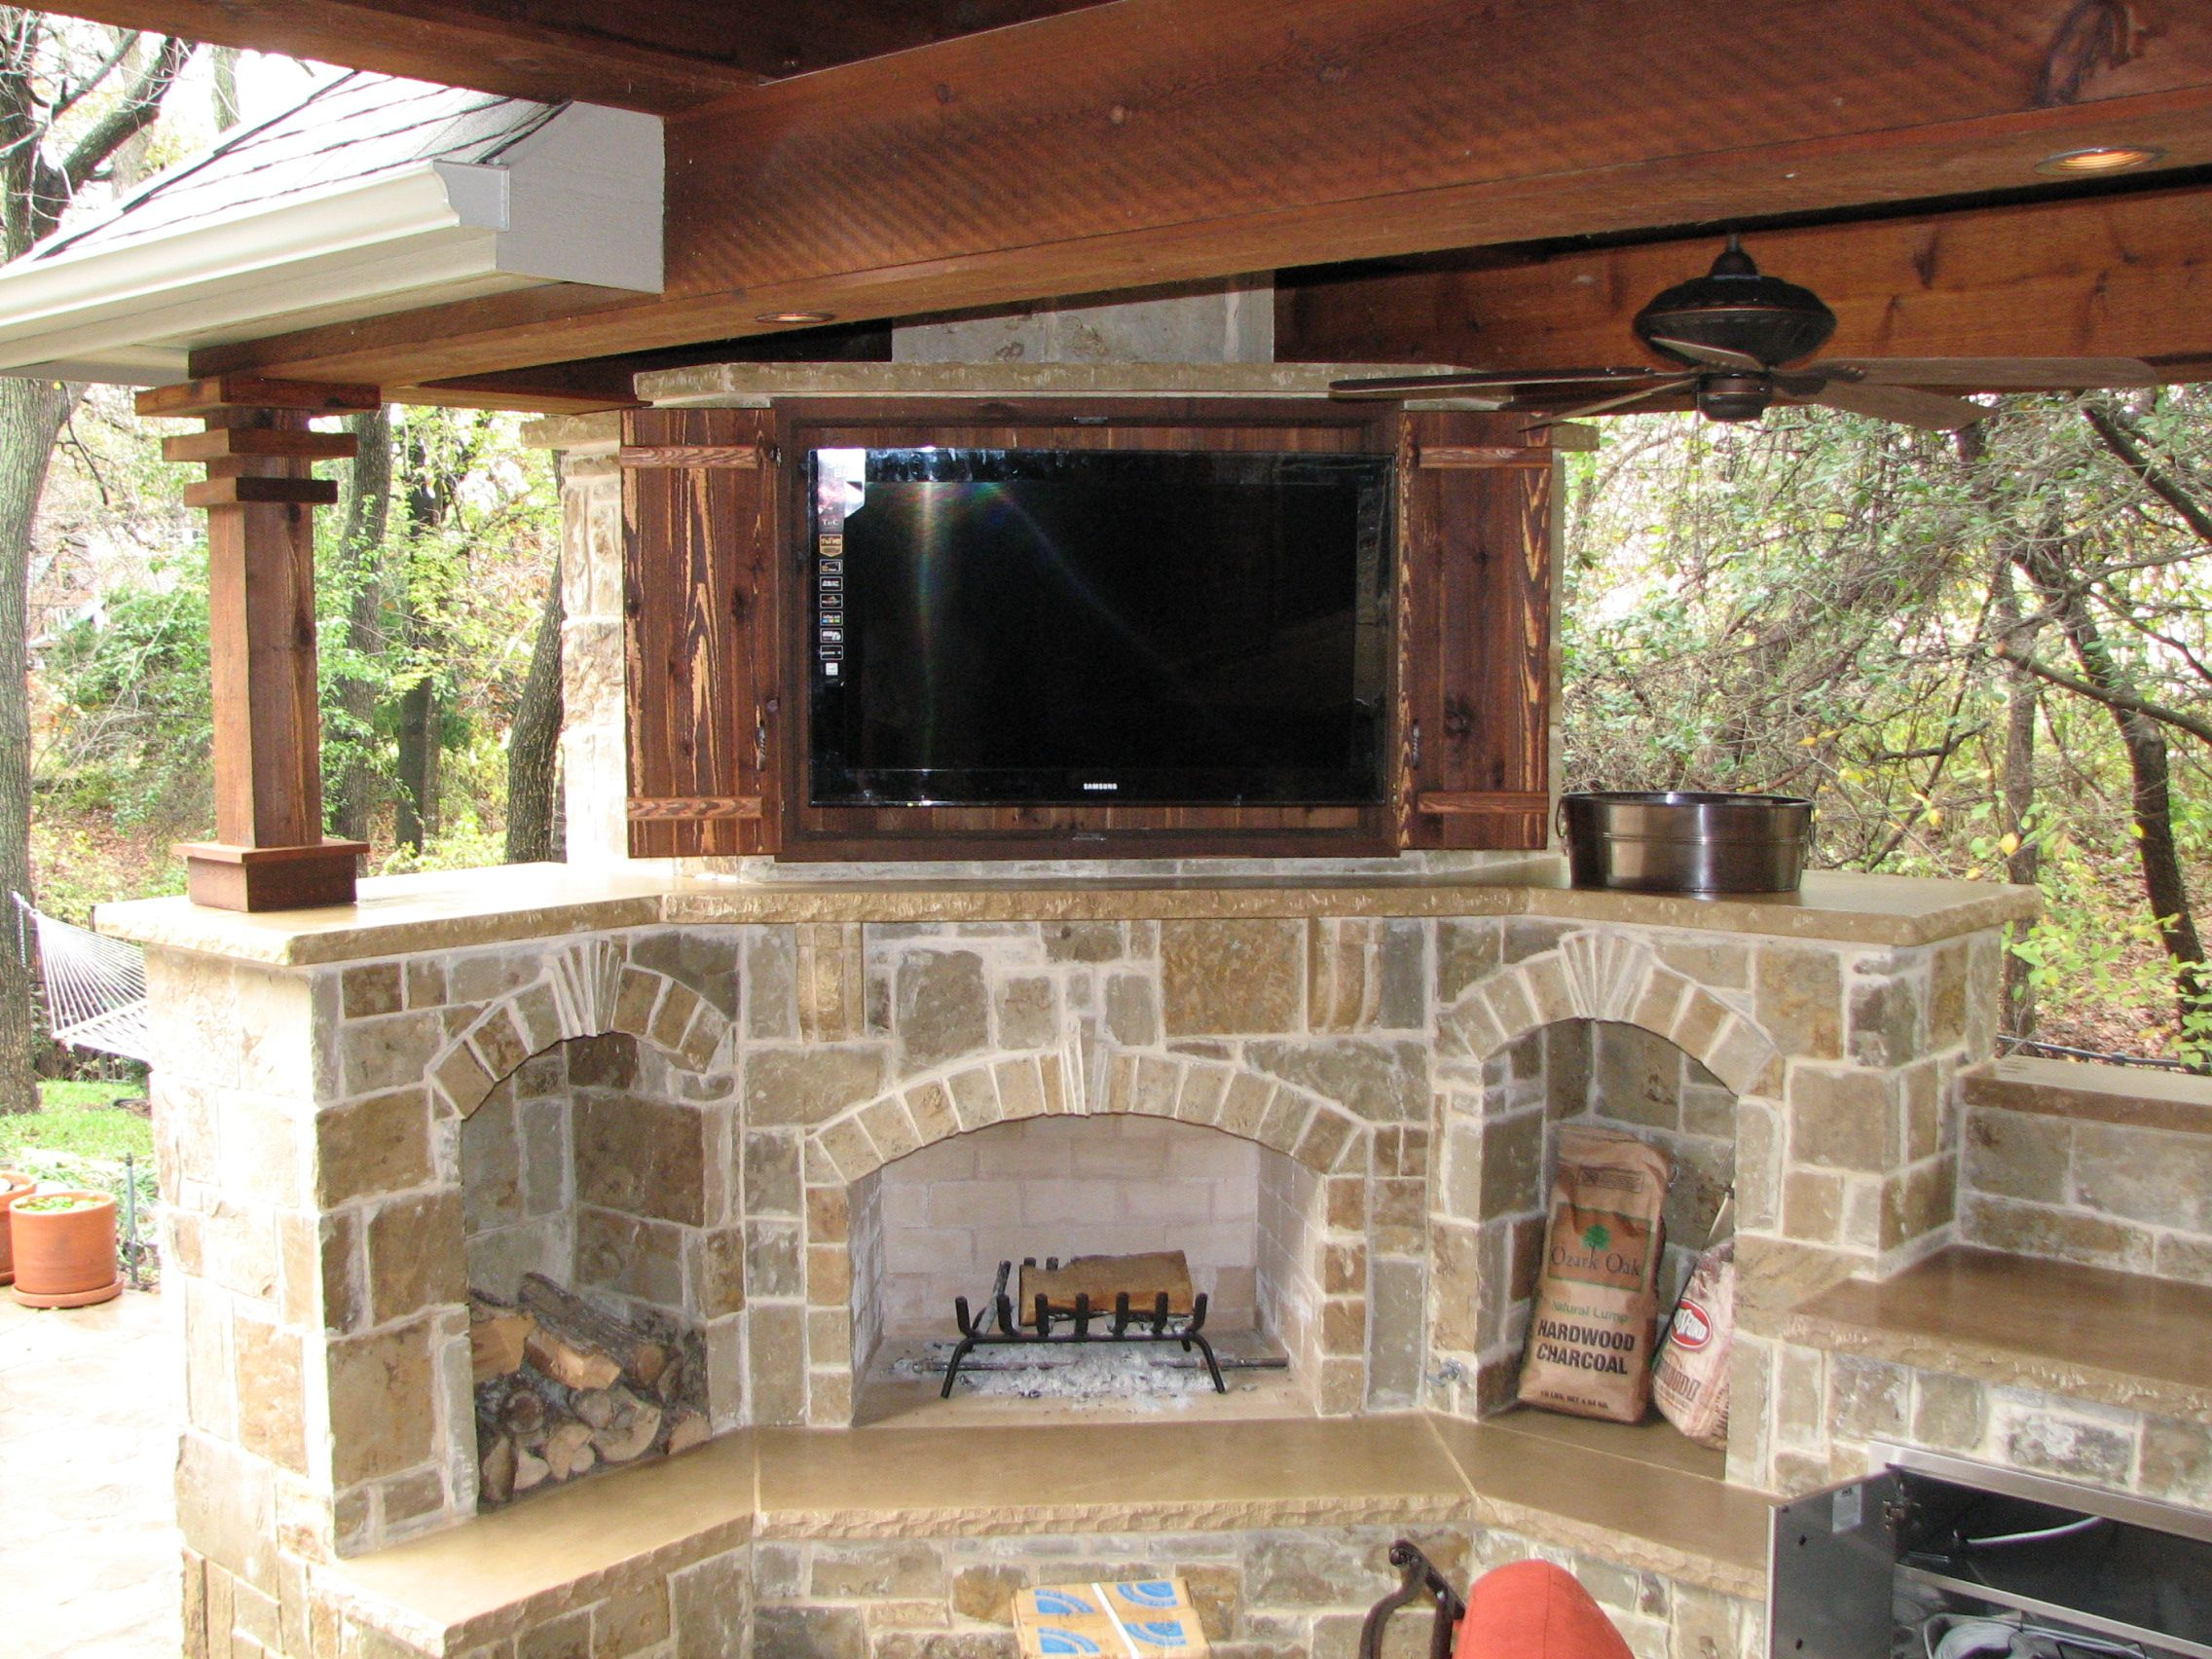 Rustic Outdoor Storage Cabinets With Doors Above Fireplace Design For Tv Cabinet With Remote